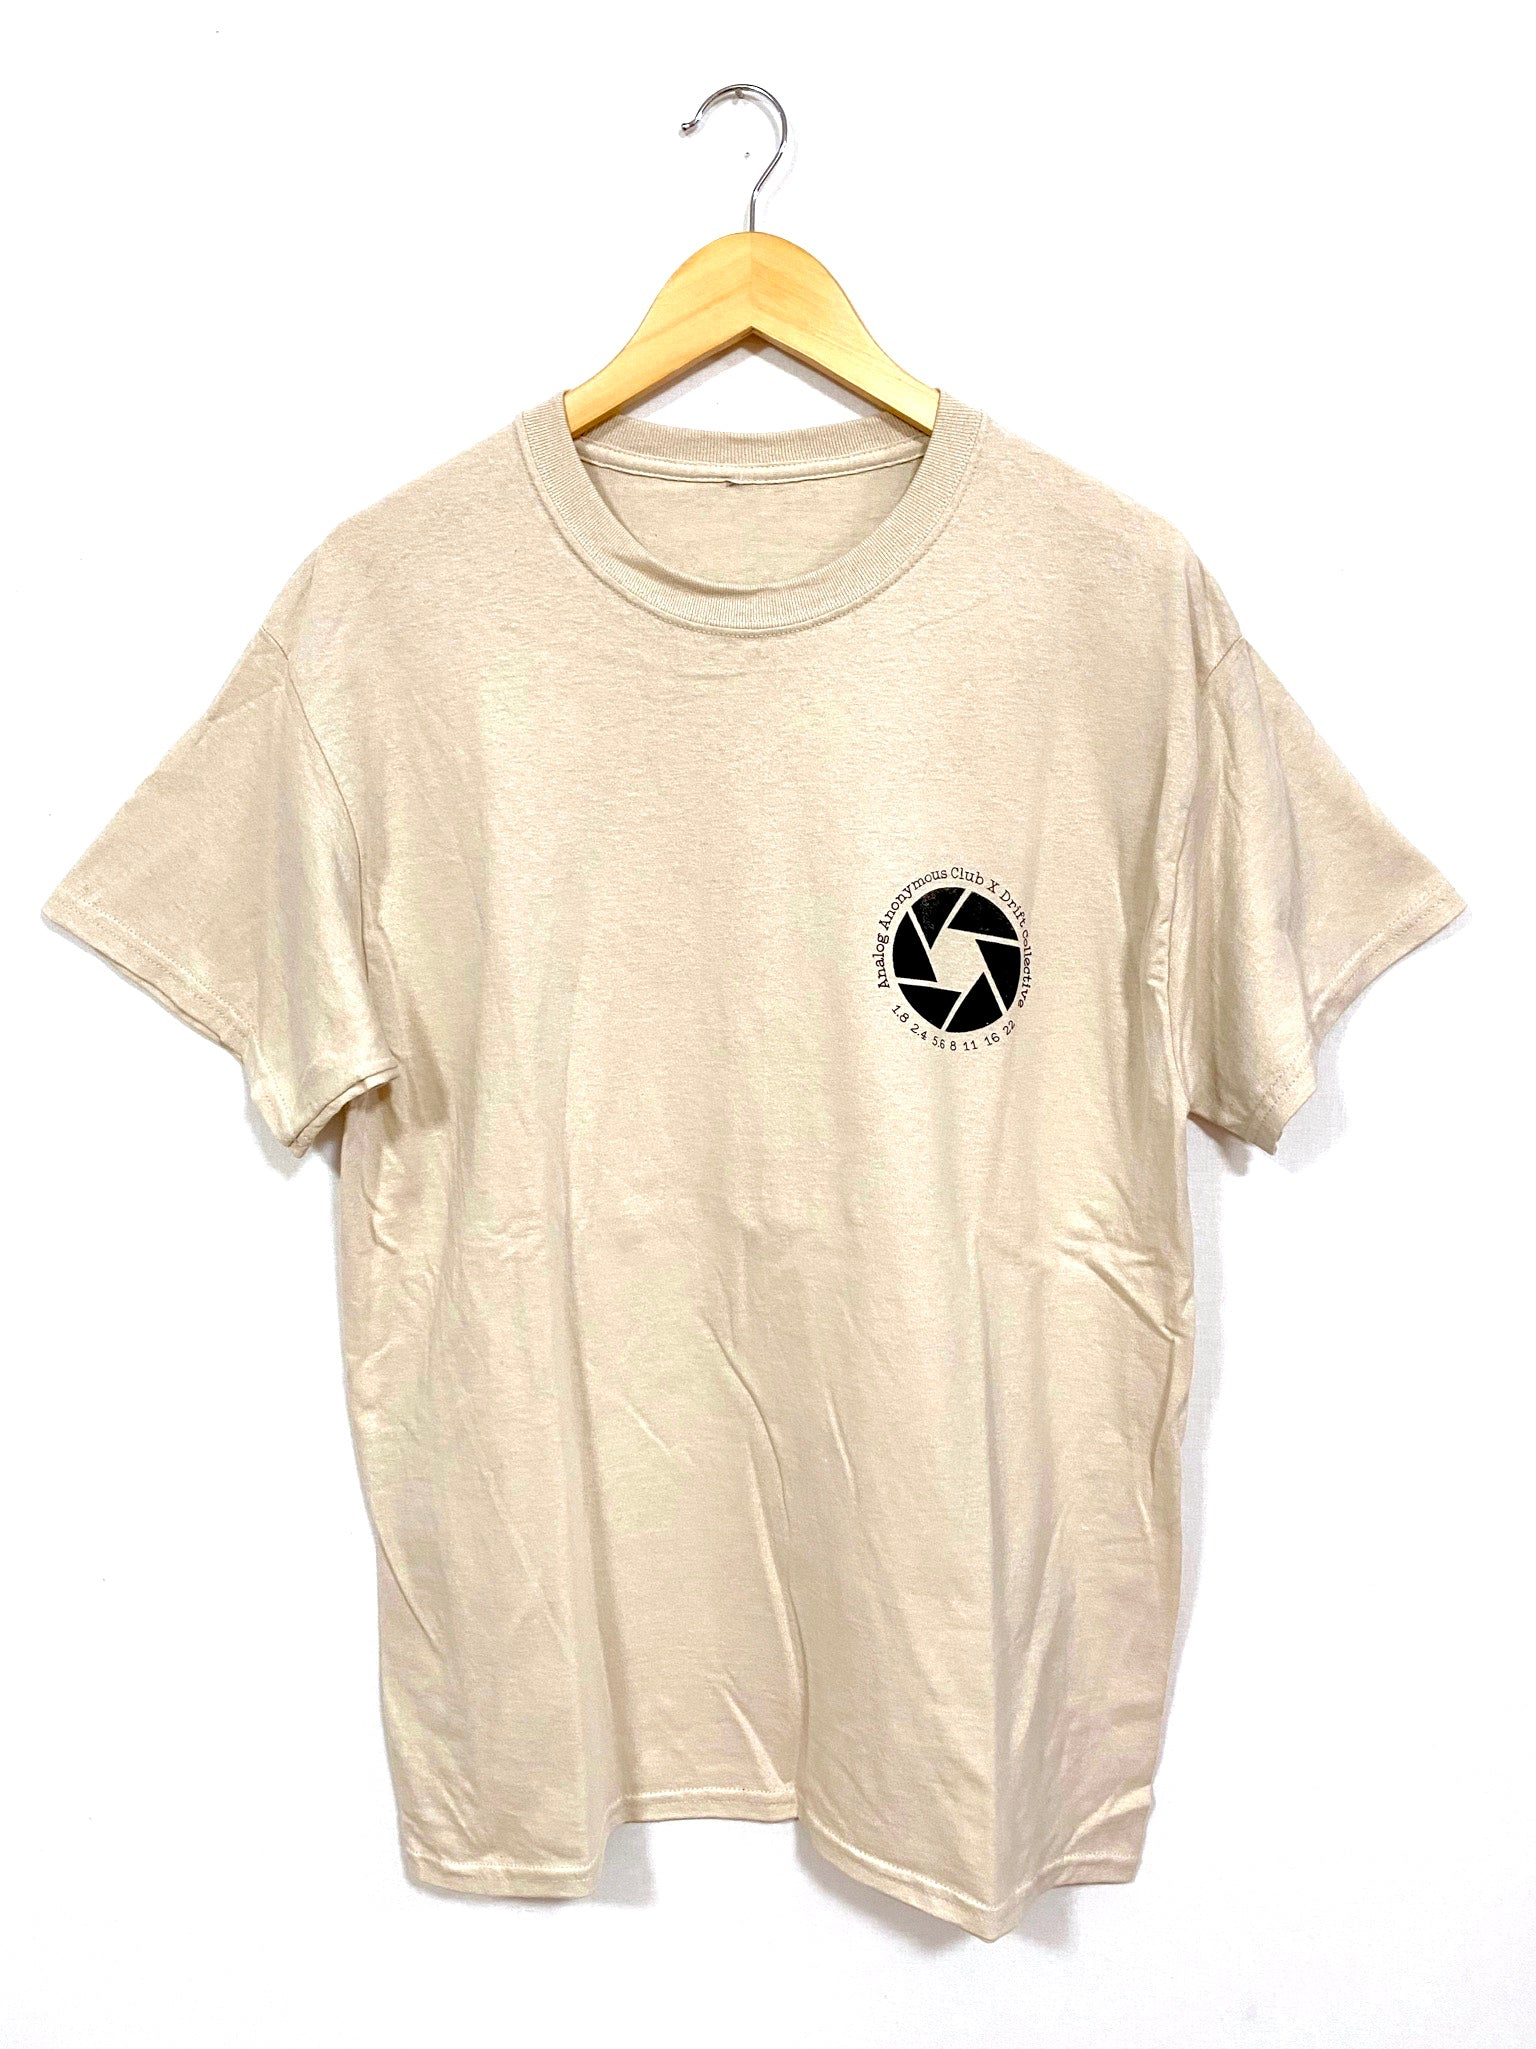 ANALOG ANONYMOUS CLUB TEE